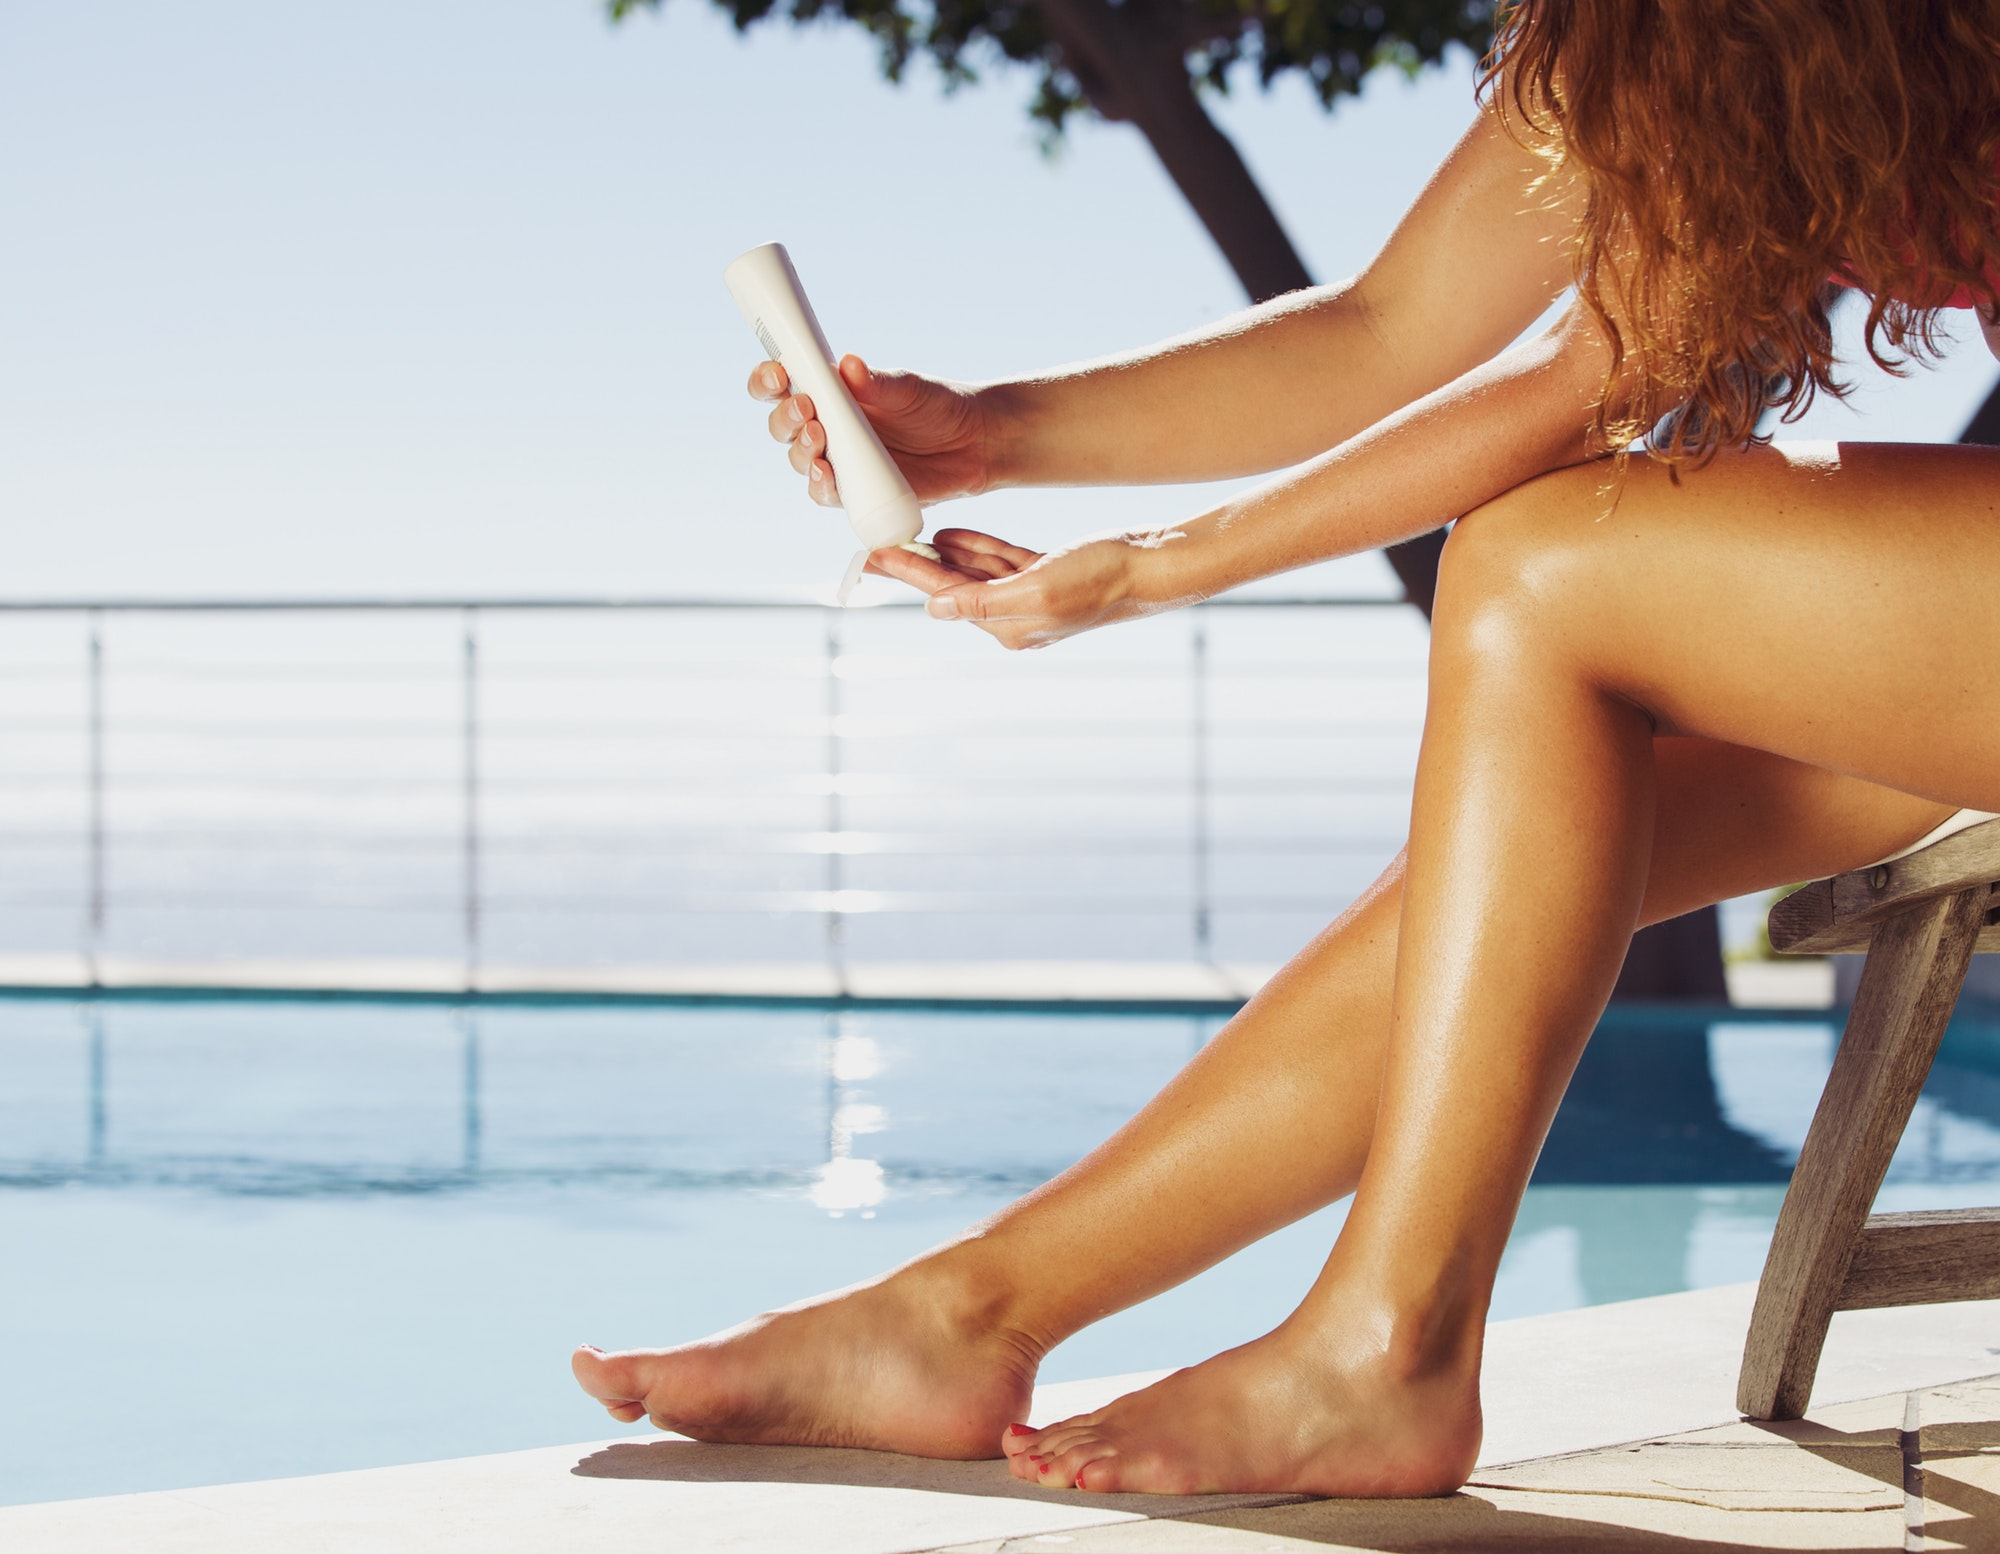 Women applying sun cream on legs